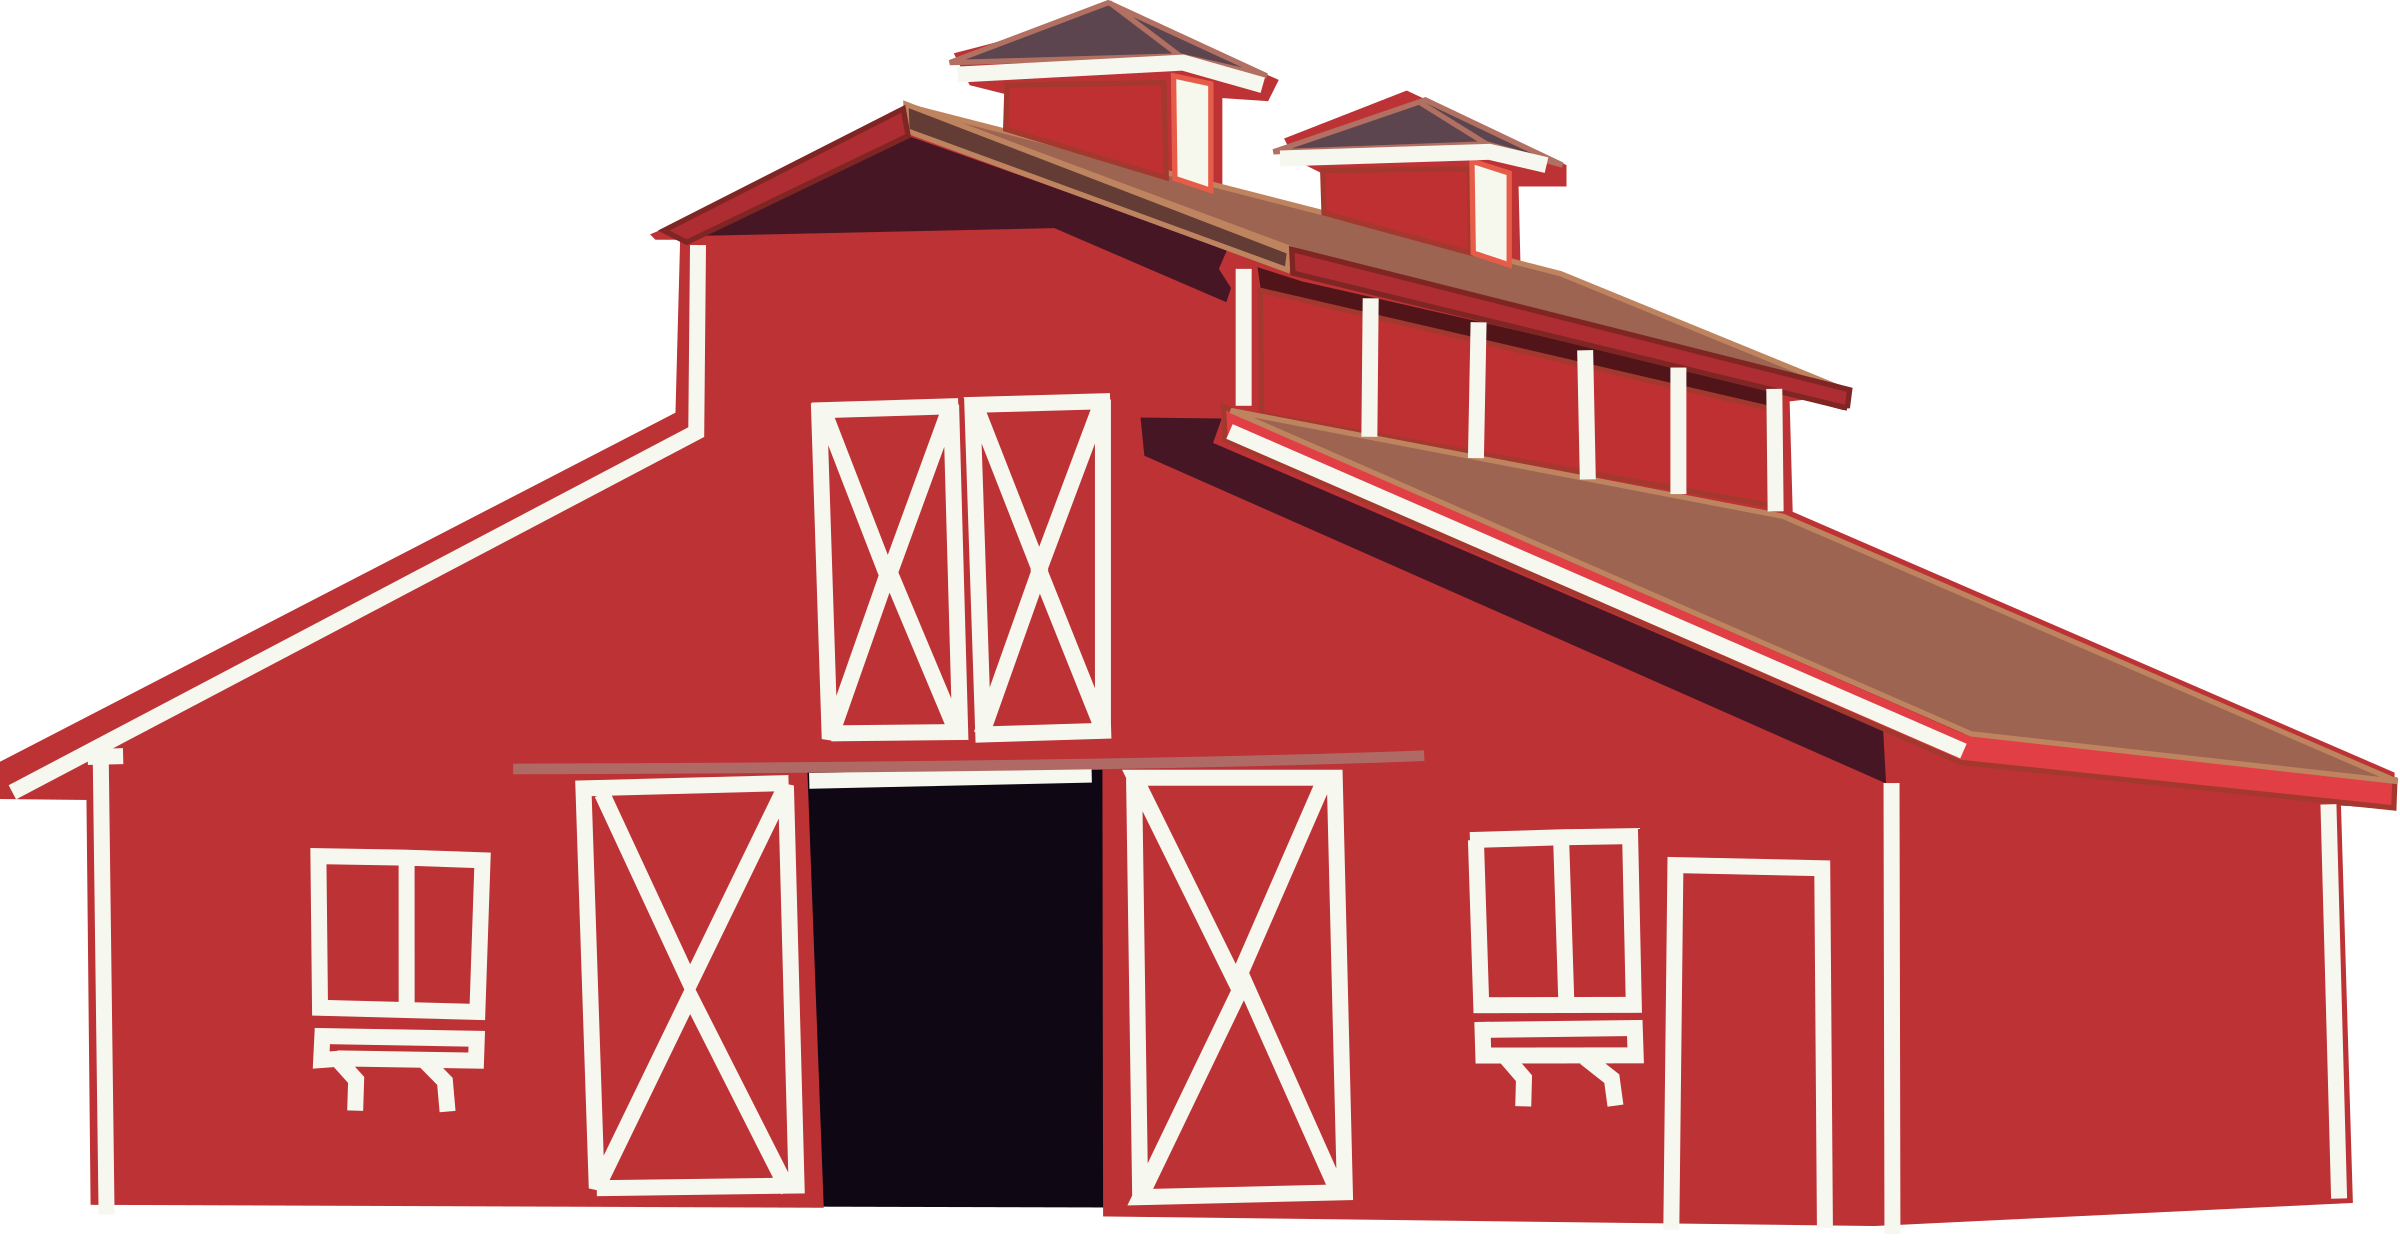 Red at getdrawings com. Barn clipart line drawing